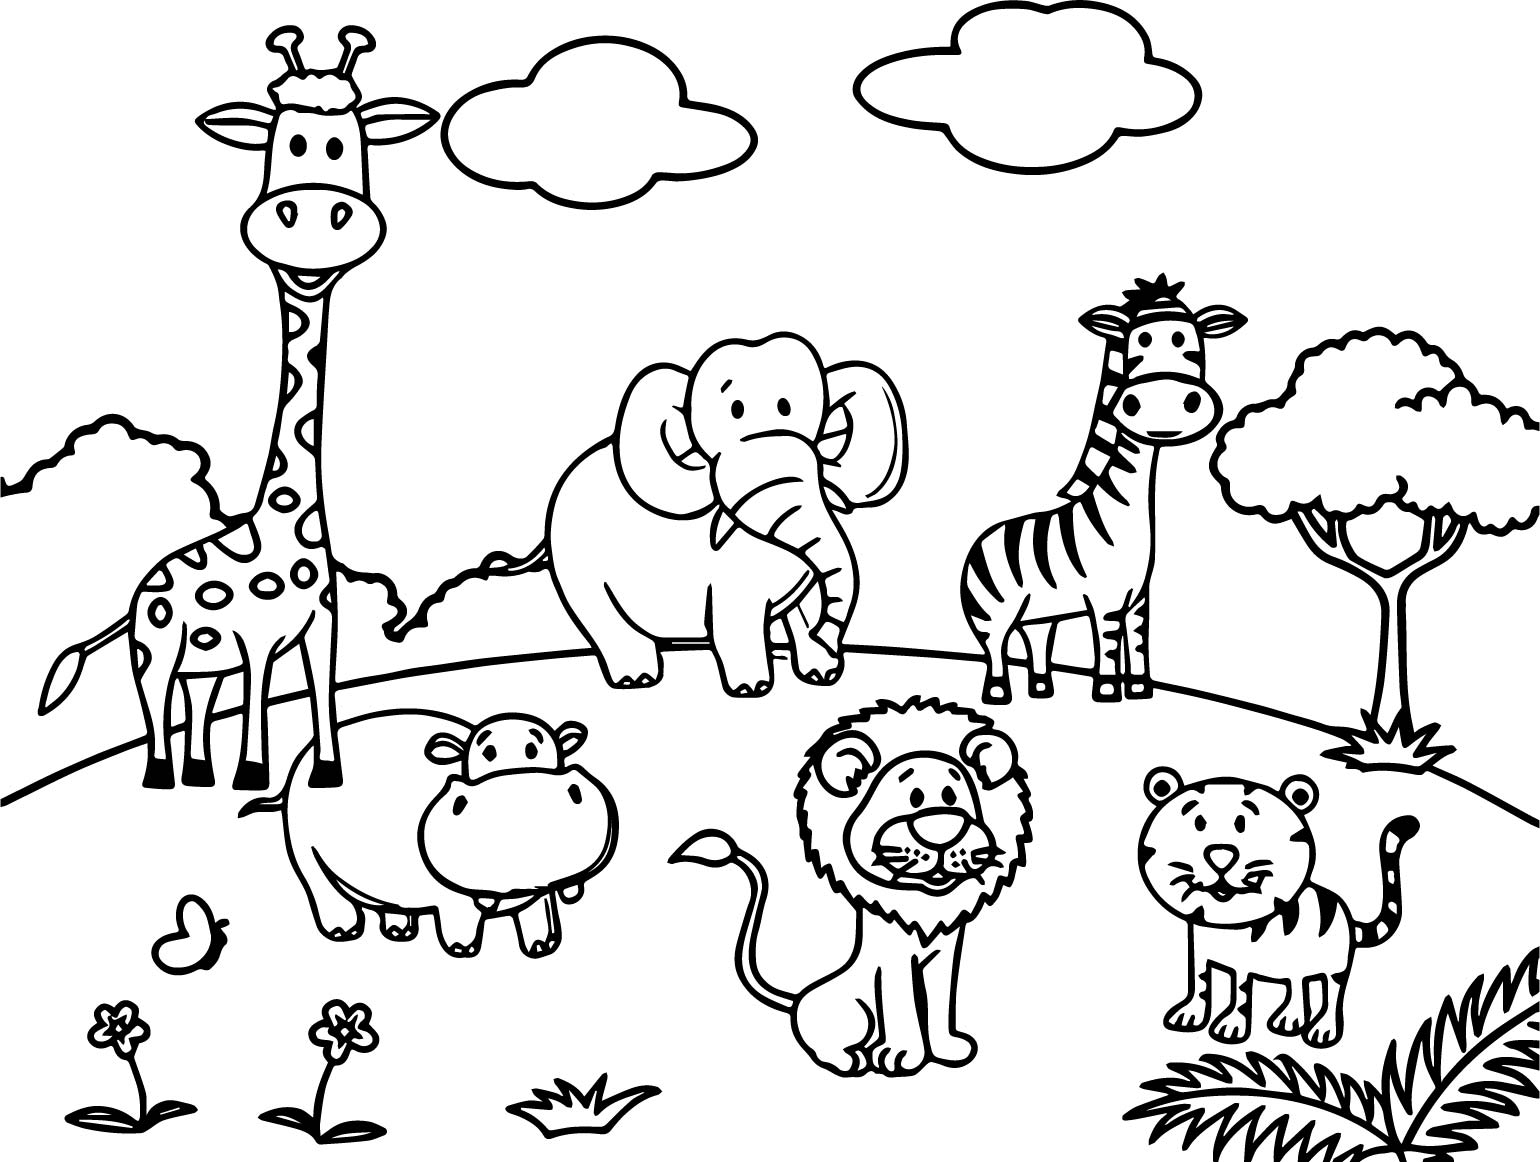 Cartoon animals all coloring page for Free zoo animal coloring pages